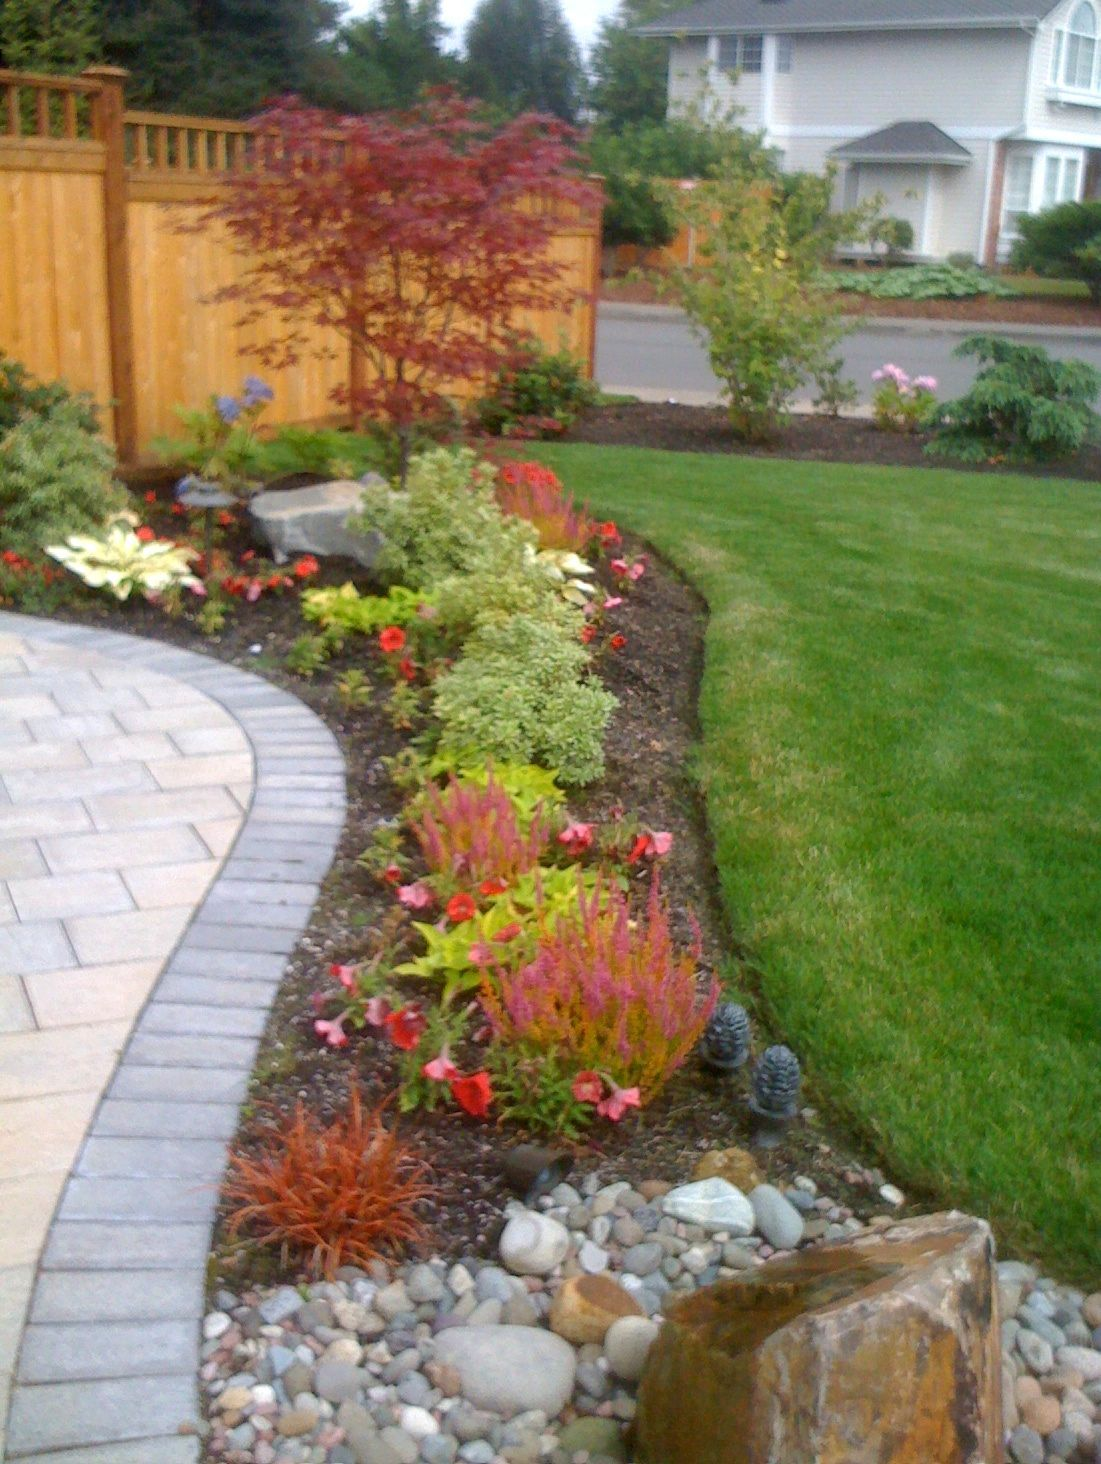 Front Yard Landscape Design For Corner House The Garden Of Her Dreams An  Olympia Gardener Creates